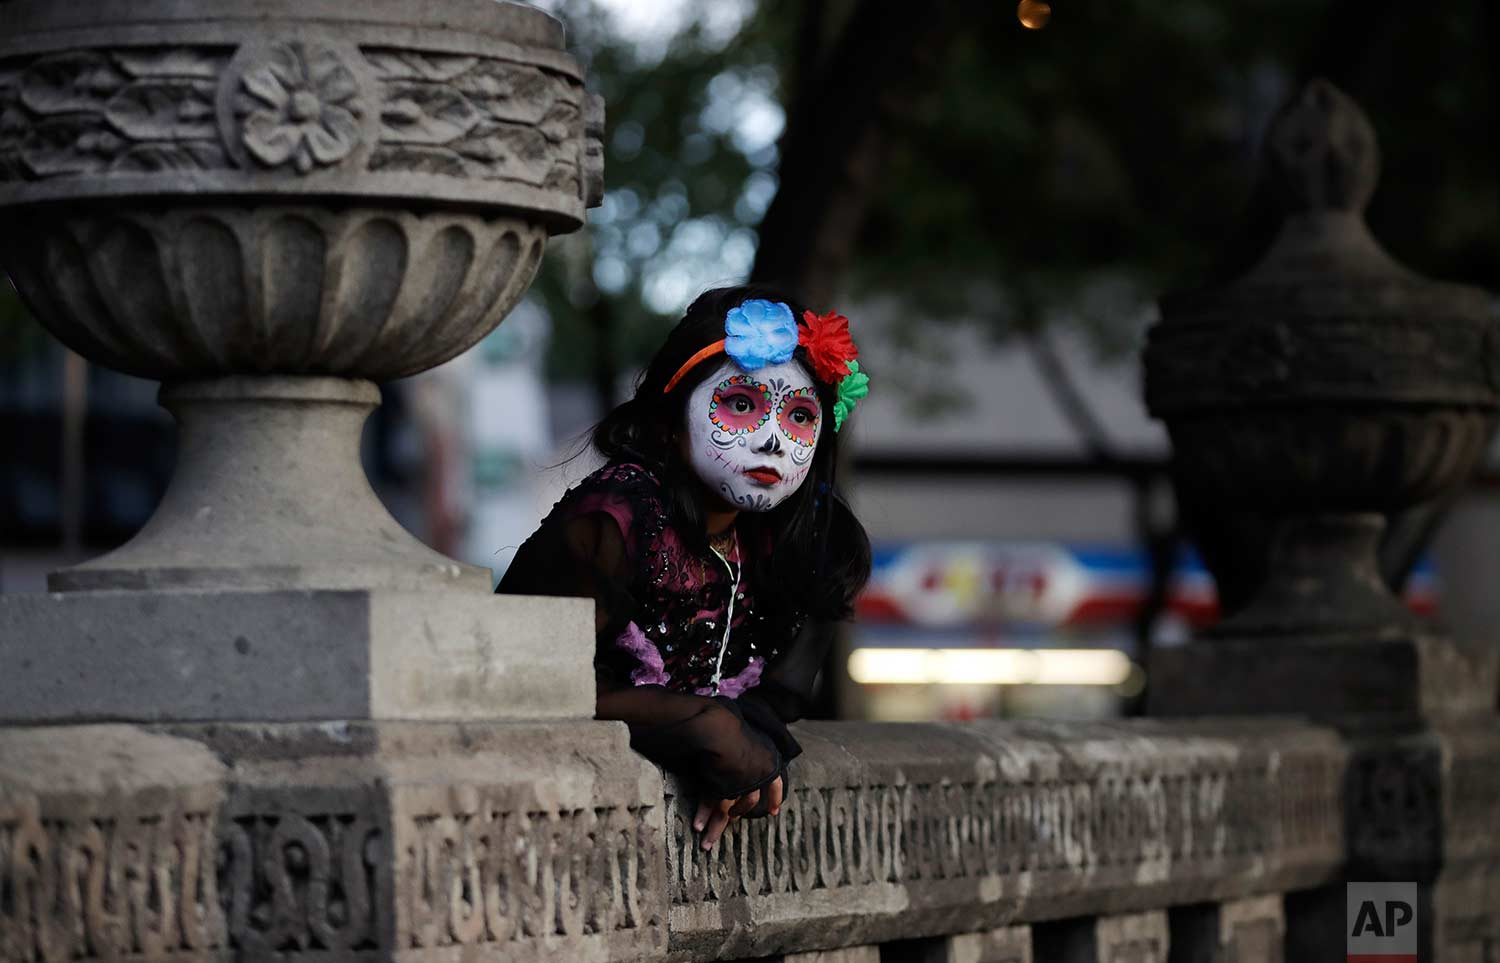 """A girl dressed as Mexico's iconic """"Catrina"""" leans against stone benches as she awaits the start of the Grand Procession of the Catrinas, part of upcoming Day of the Dead celebrations in Mexico City, Sunday, Oct. 22, 2017. (AP Photo/Rebecca Blackwell)"""